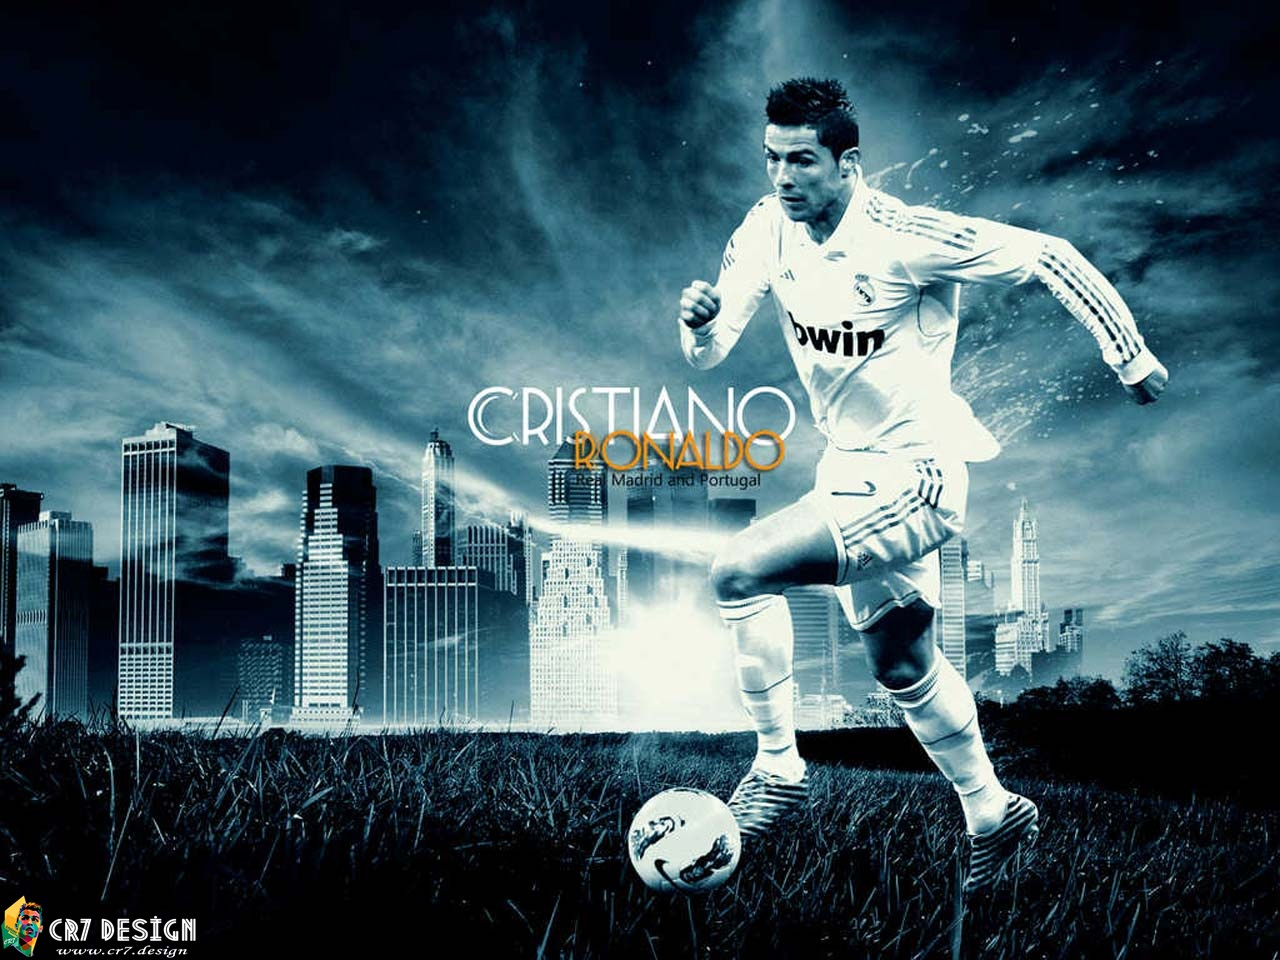 ciristiano-ronaldo-wallpaper-design-116